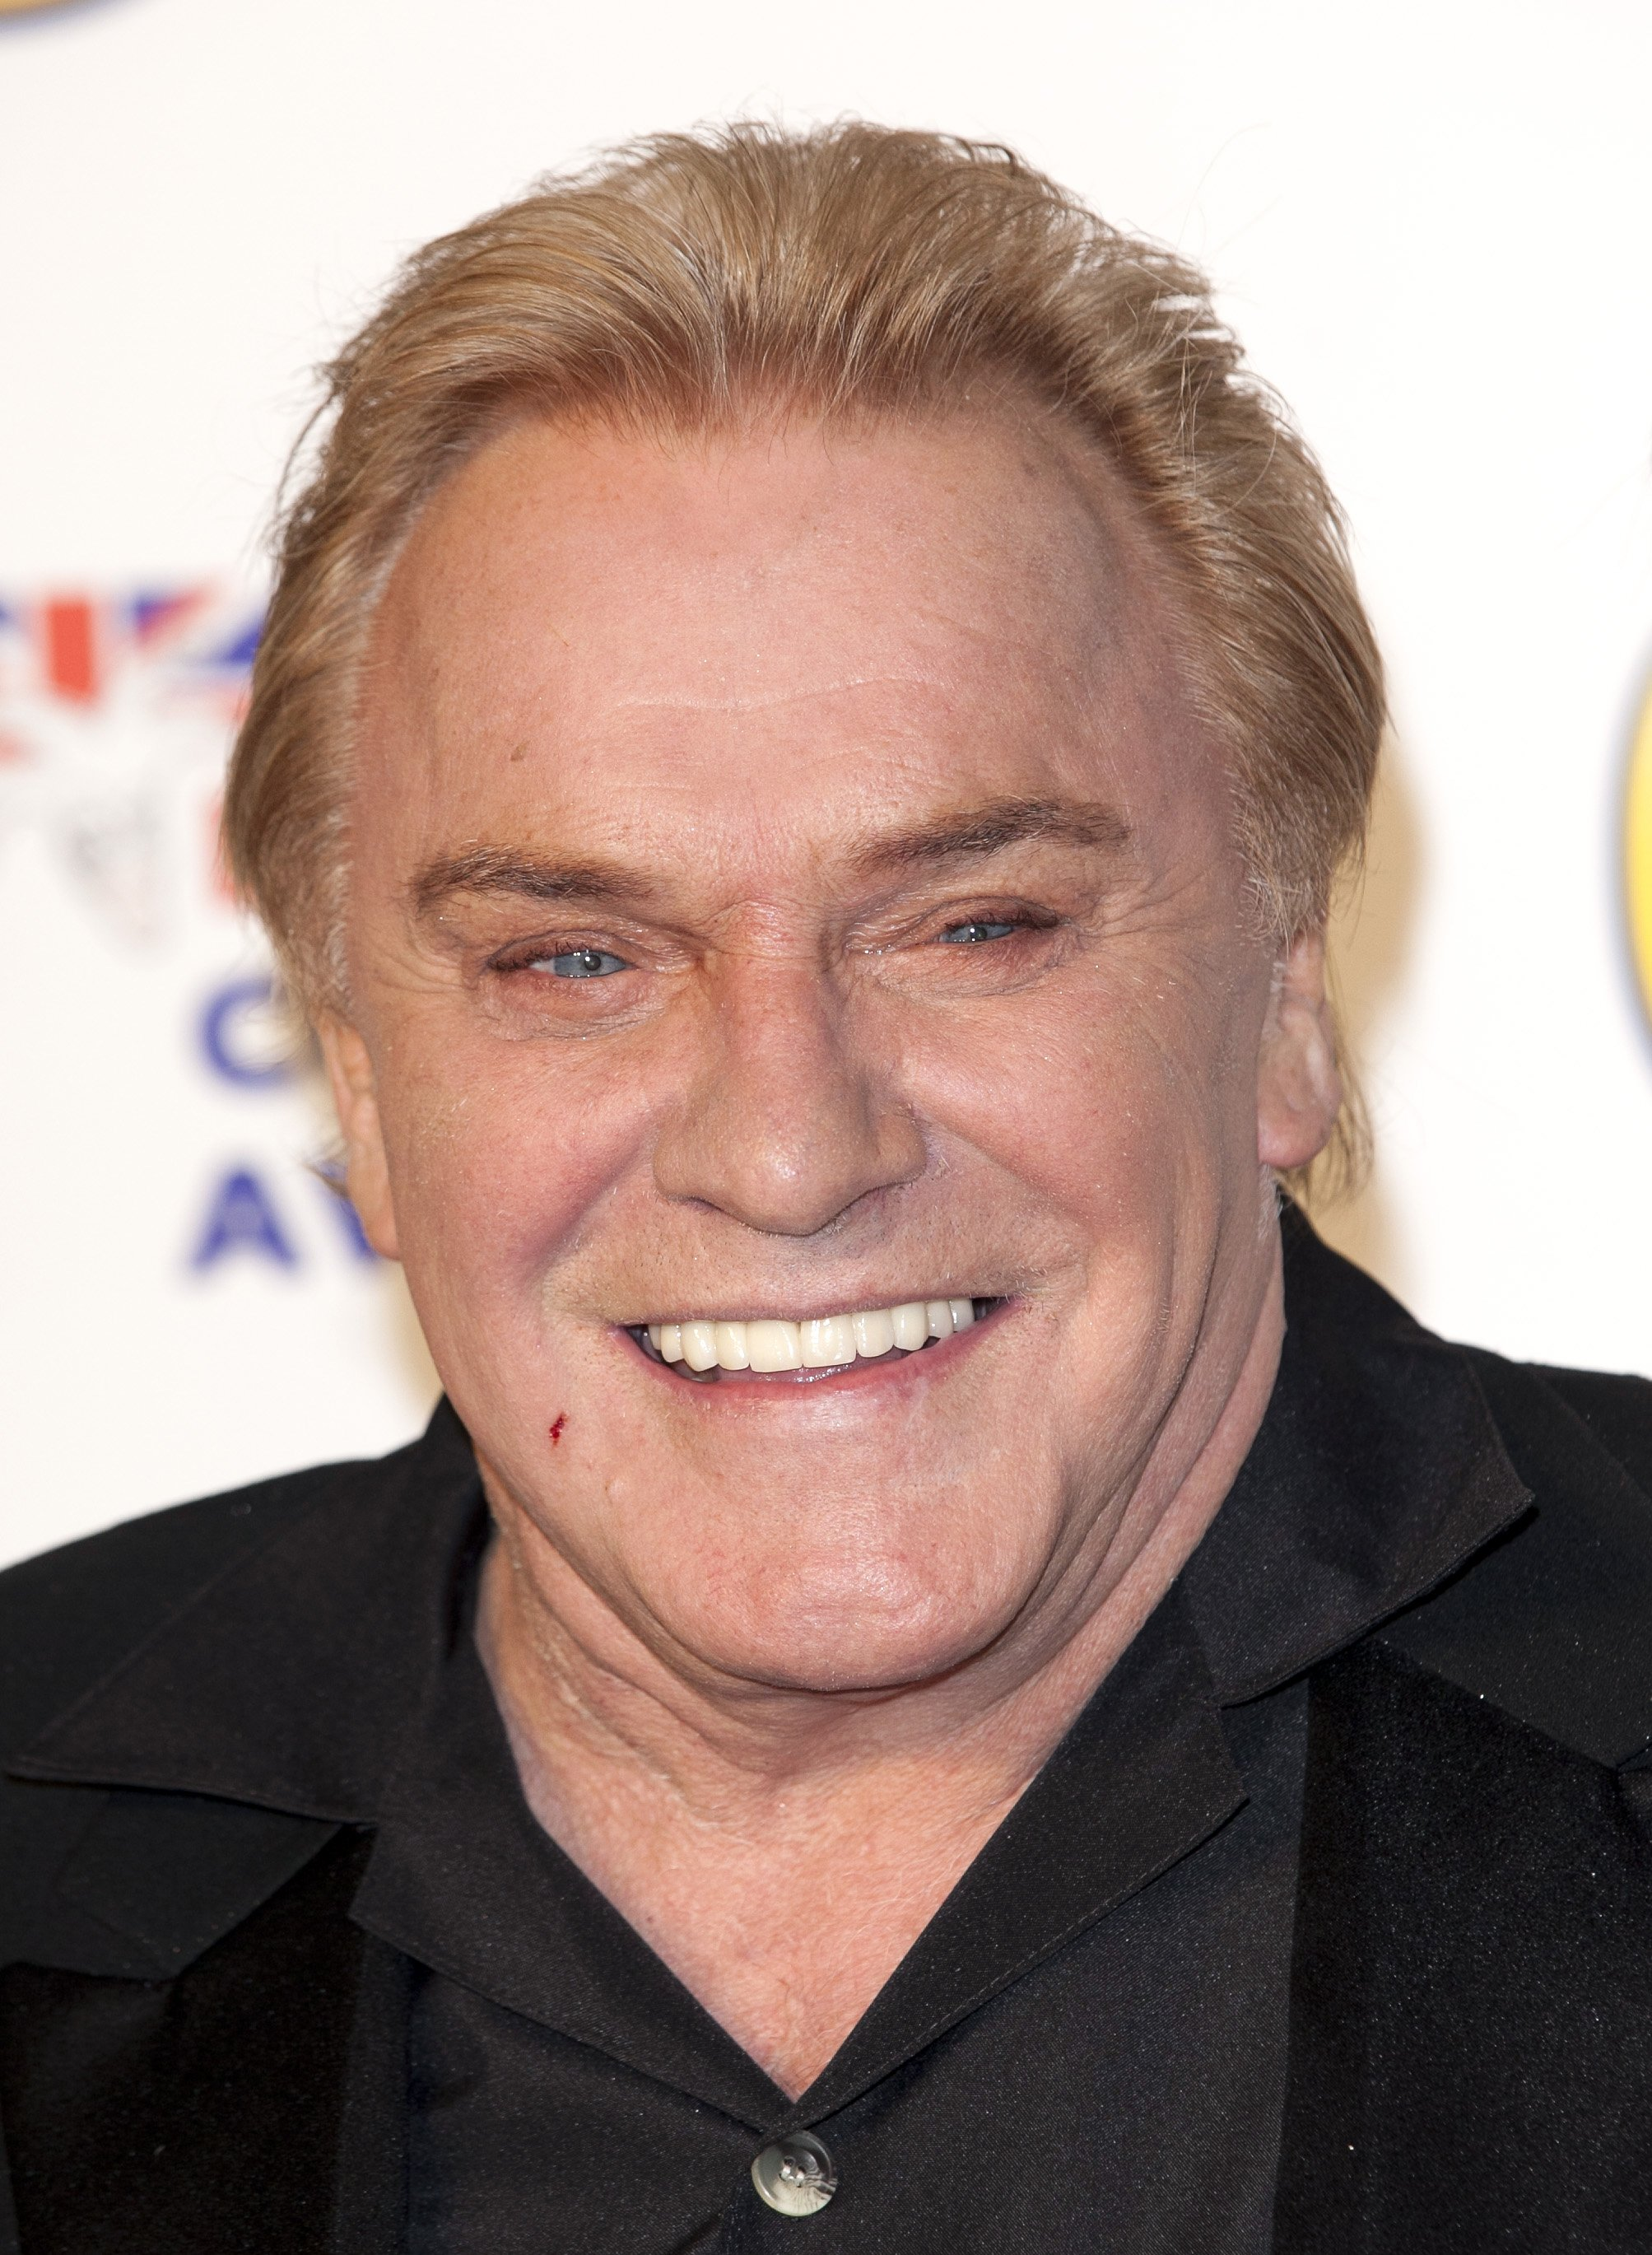 Freddie Starr at the British Comedy Awards At The Fountain Studios In London | Photo: Getty Images